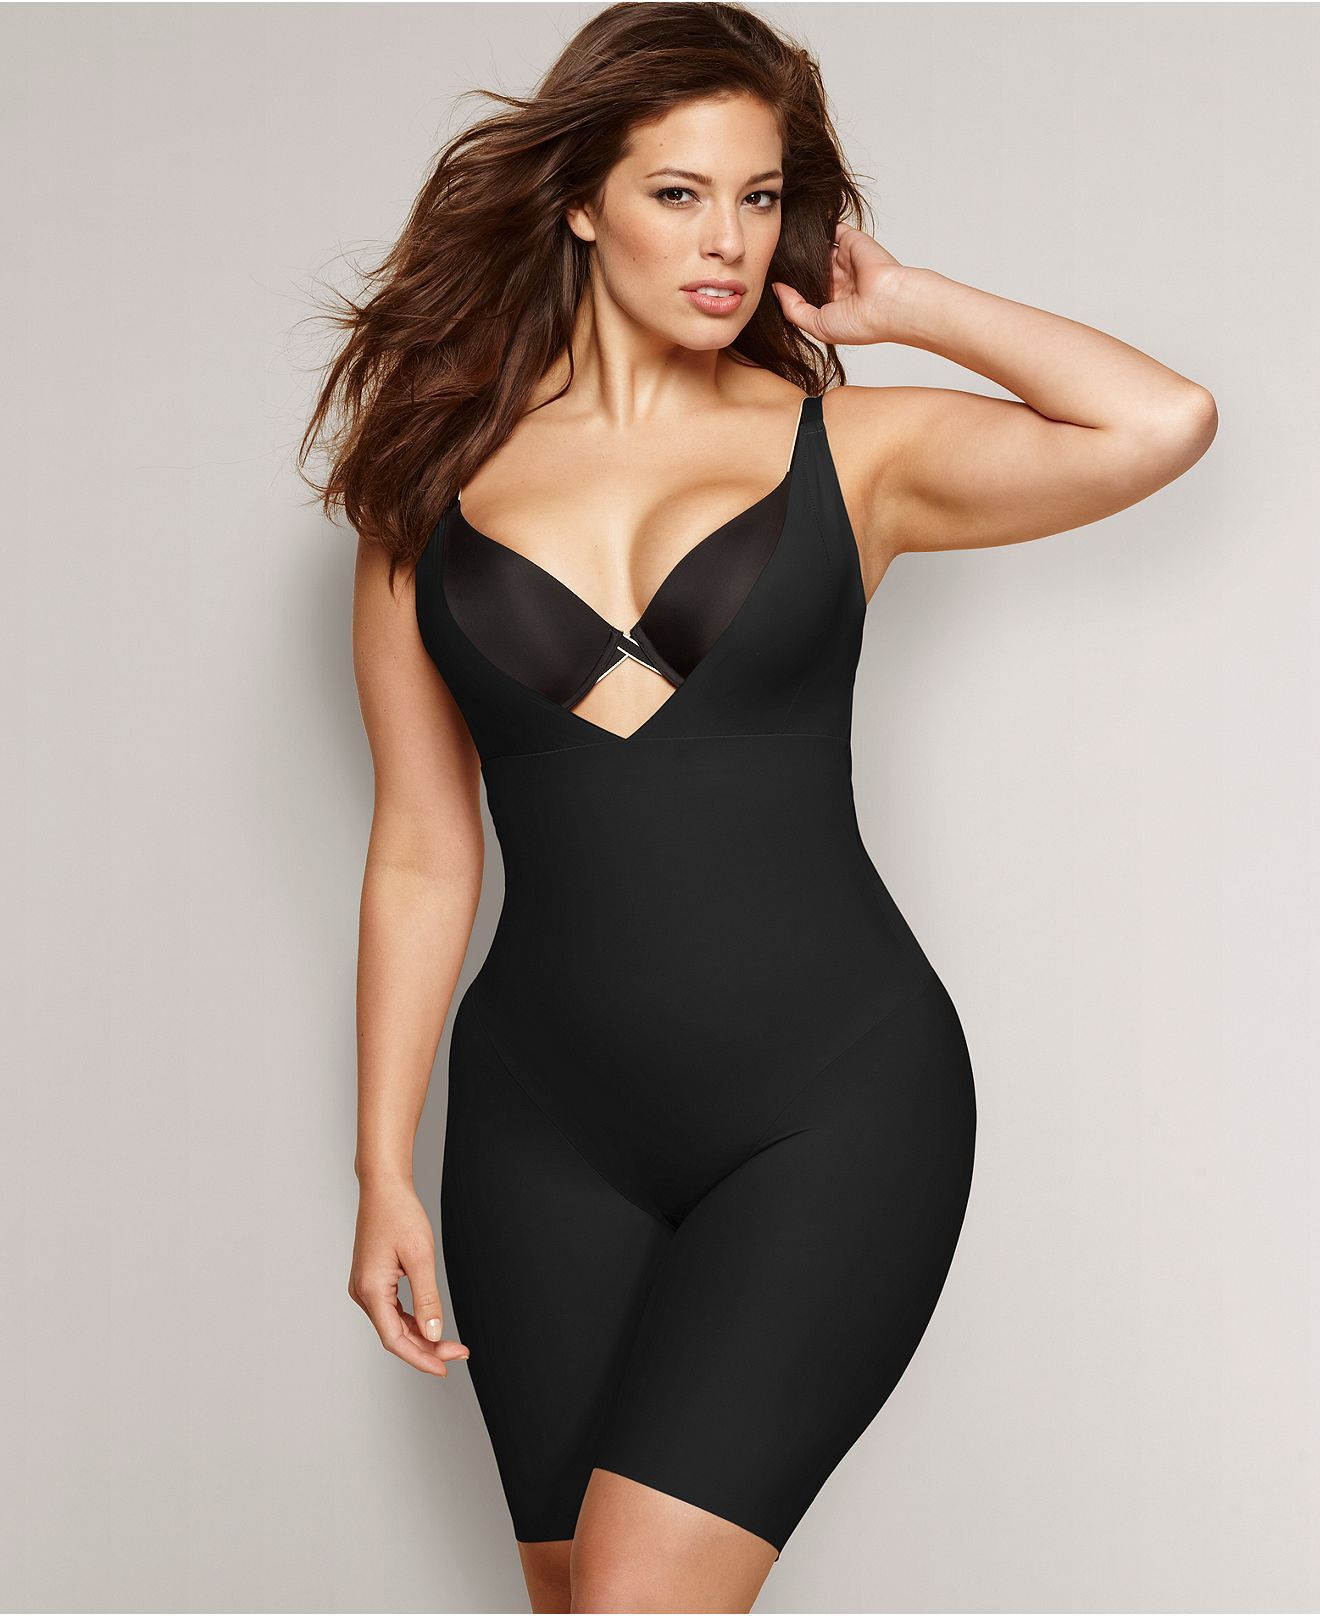 d22a9e21853 Flexees by Maidenform Plus Size Shapewear